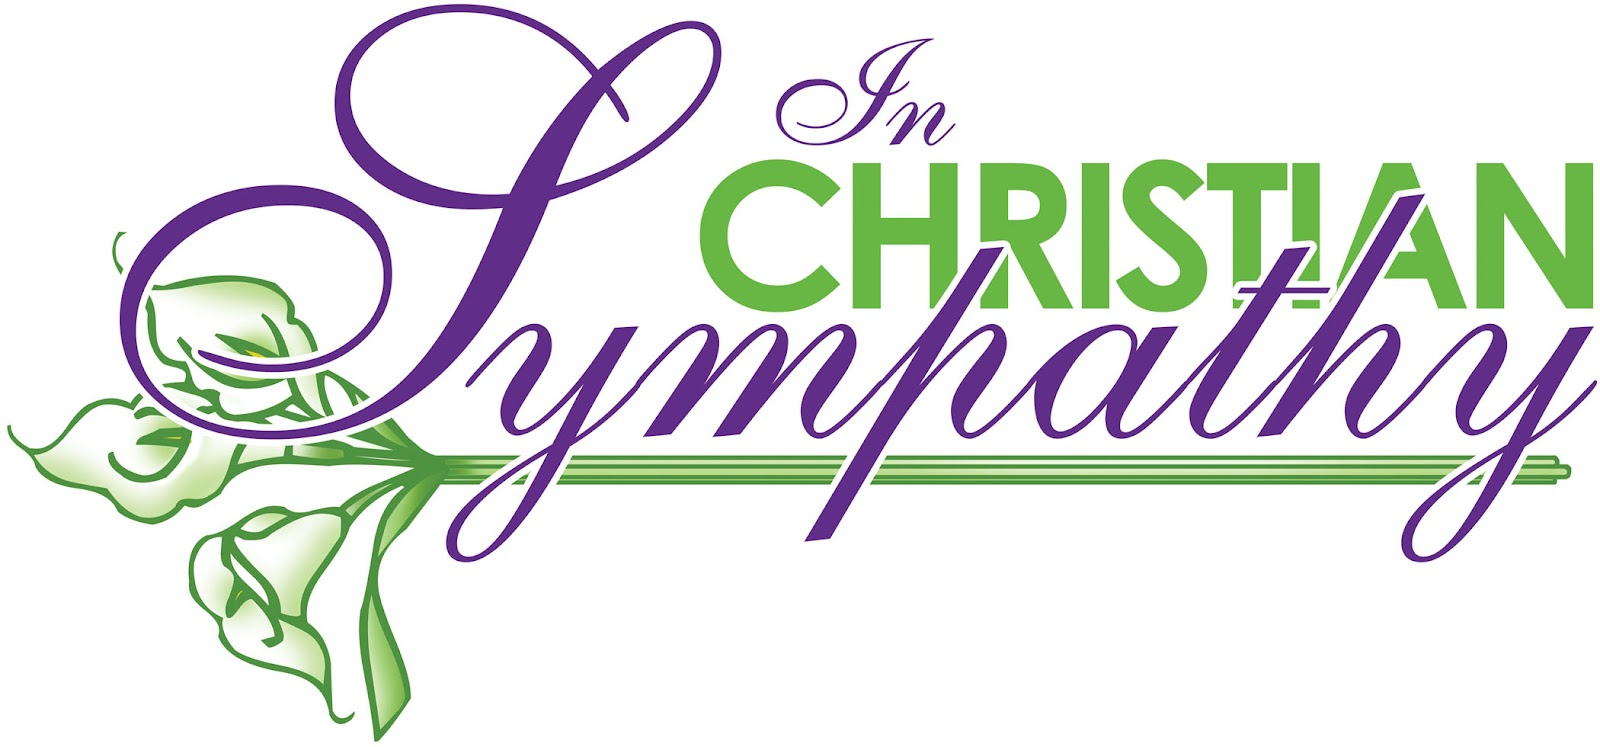 Sympathy Clipart Free - Cliparts.co